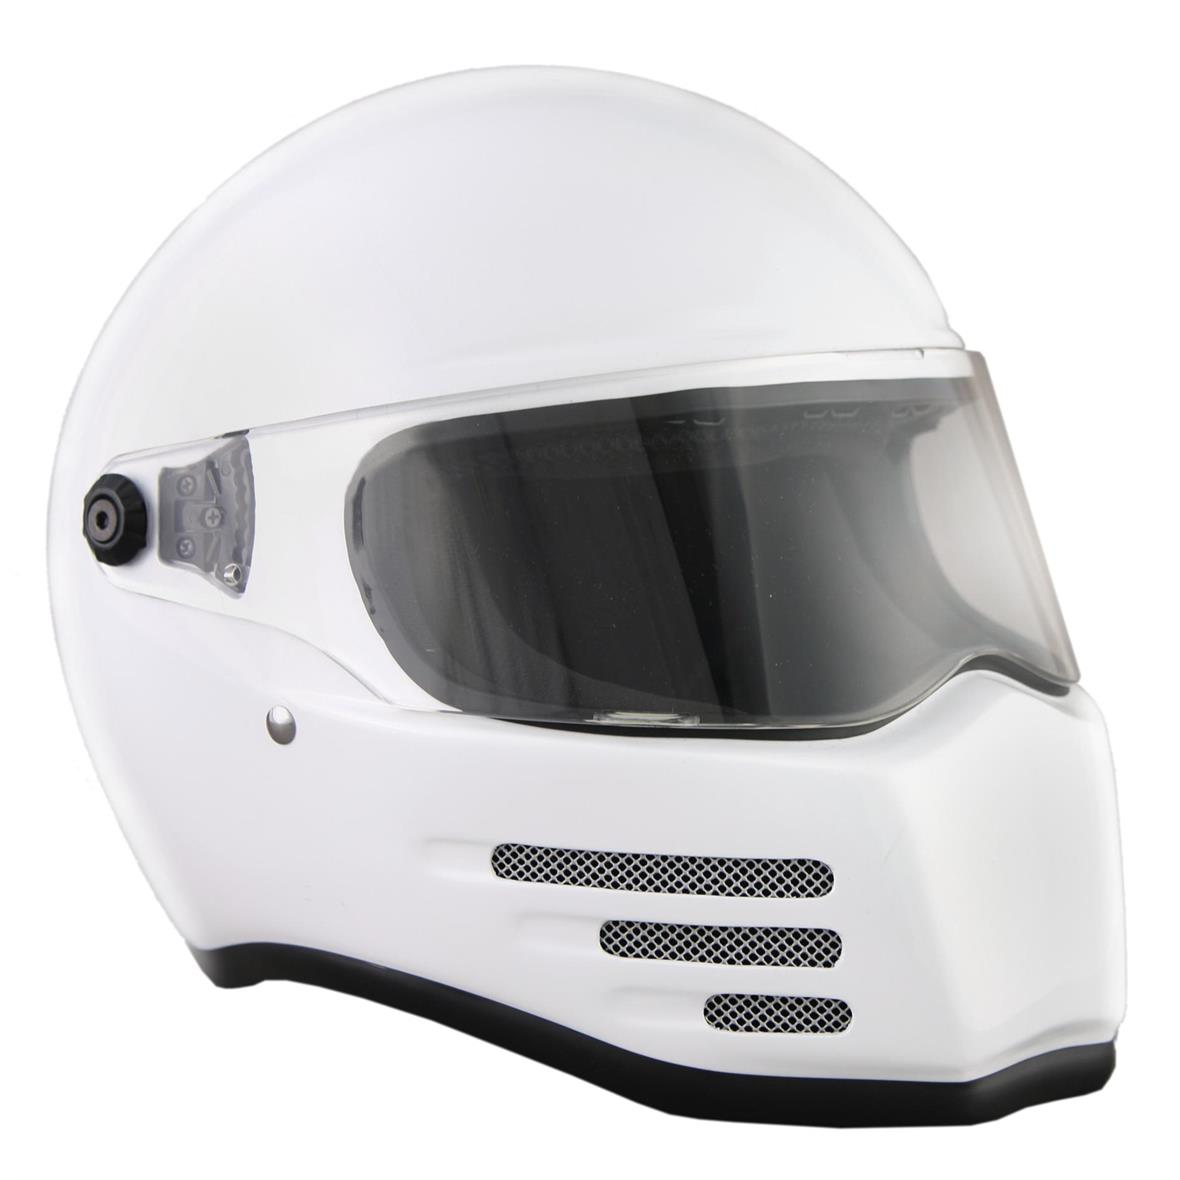 Product Image for 'Helmet BANDIT FighterTitle'